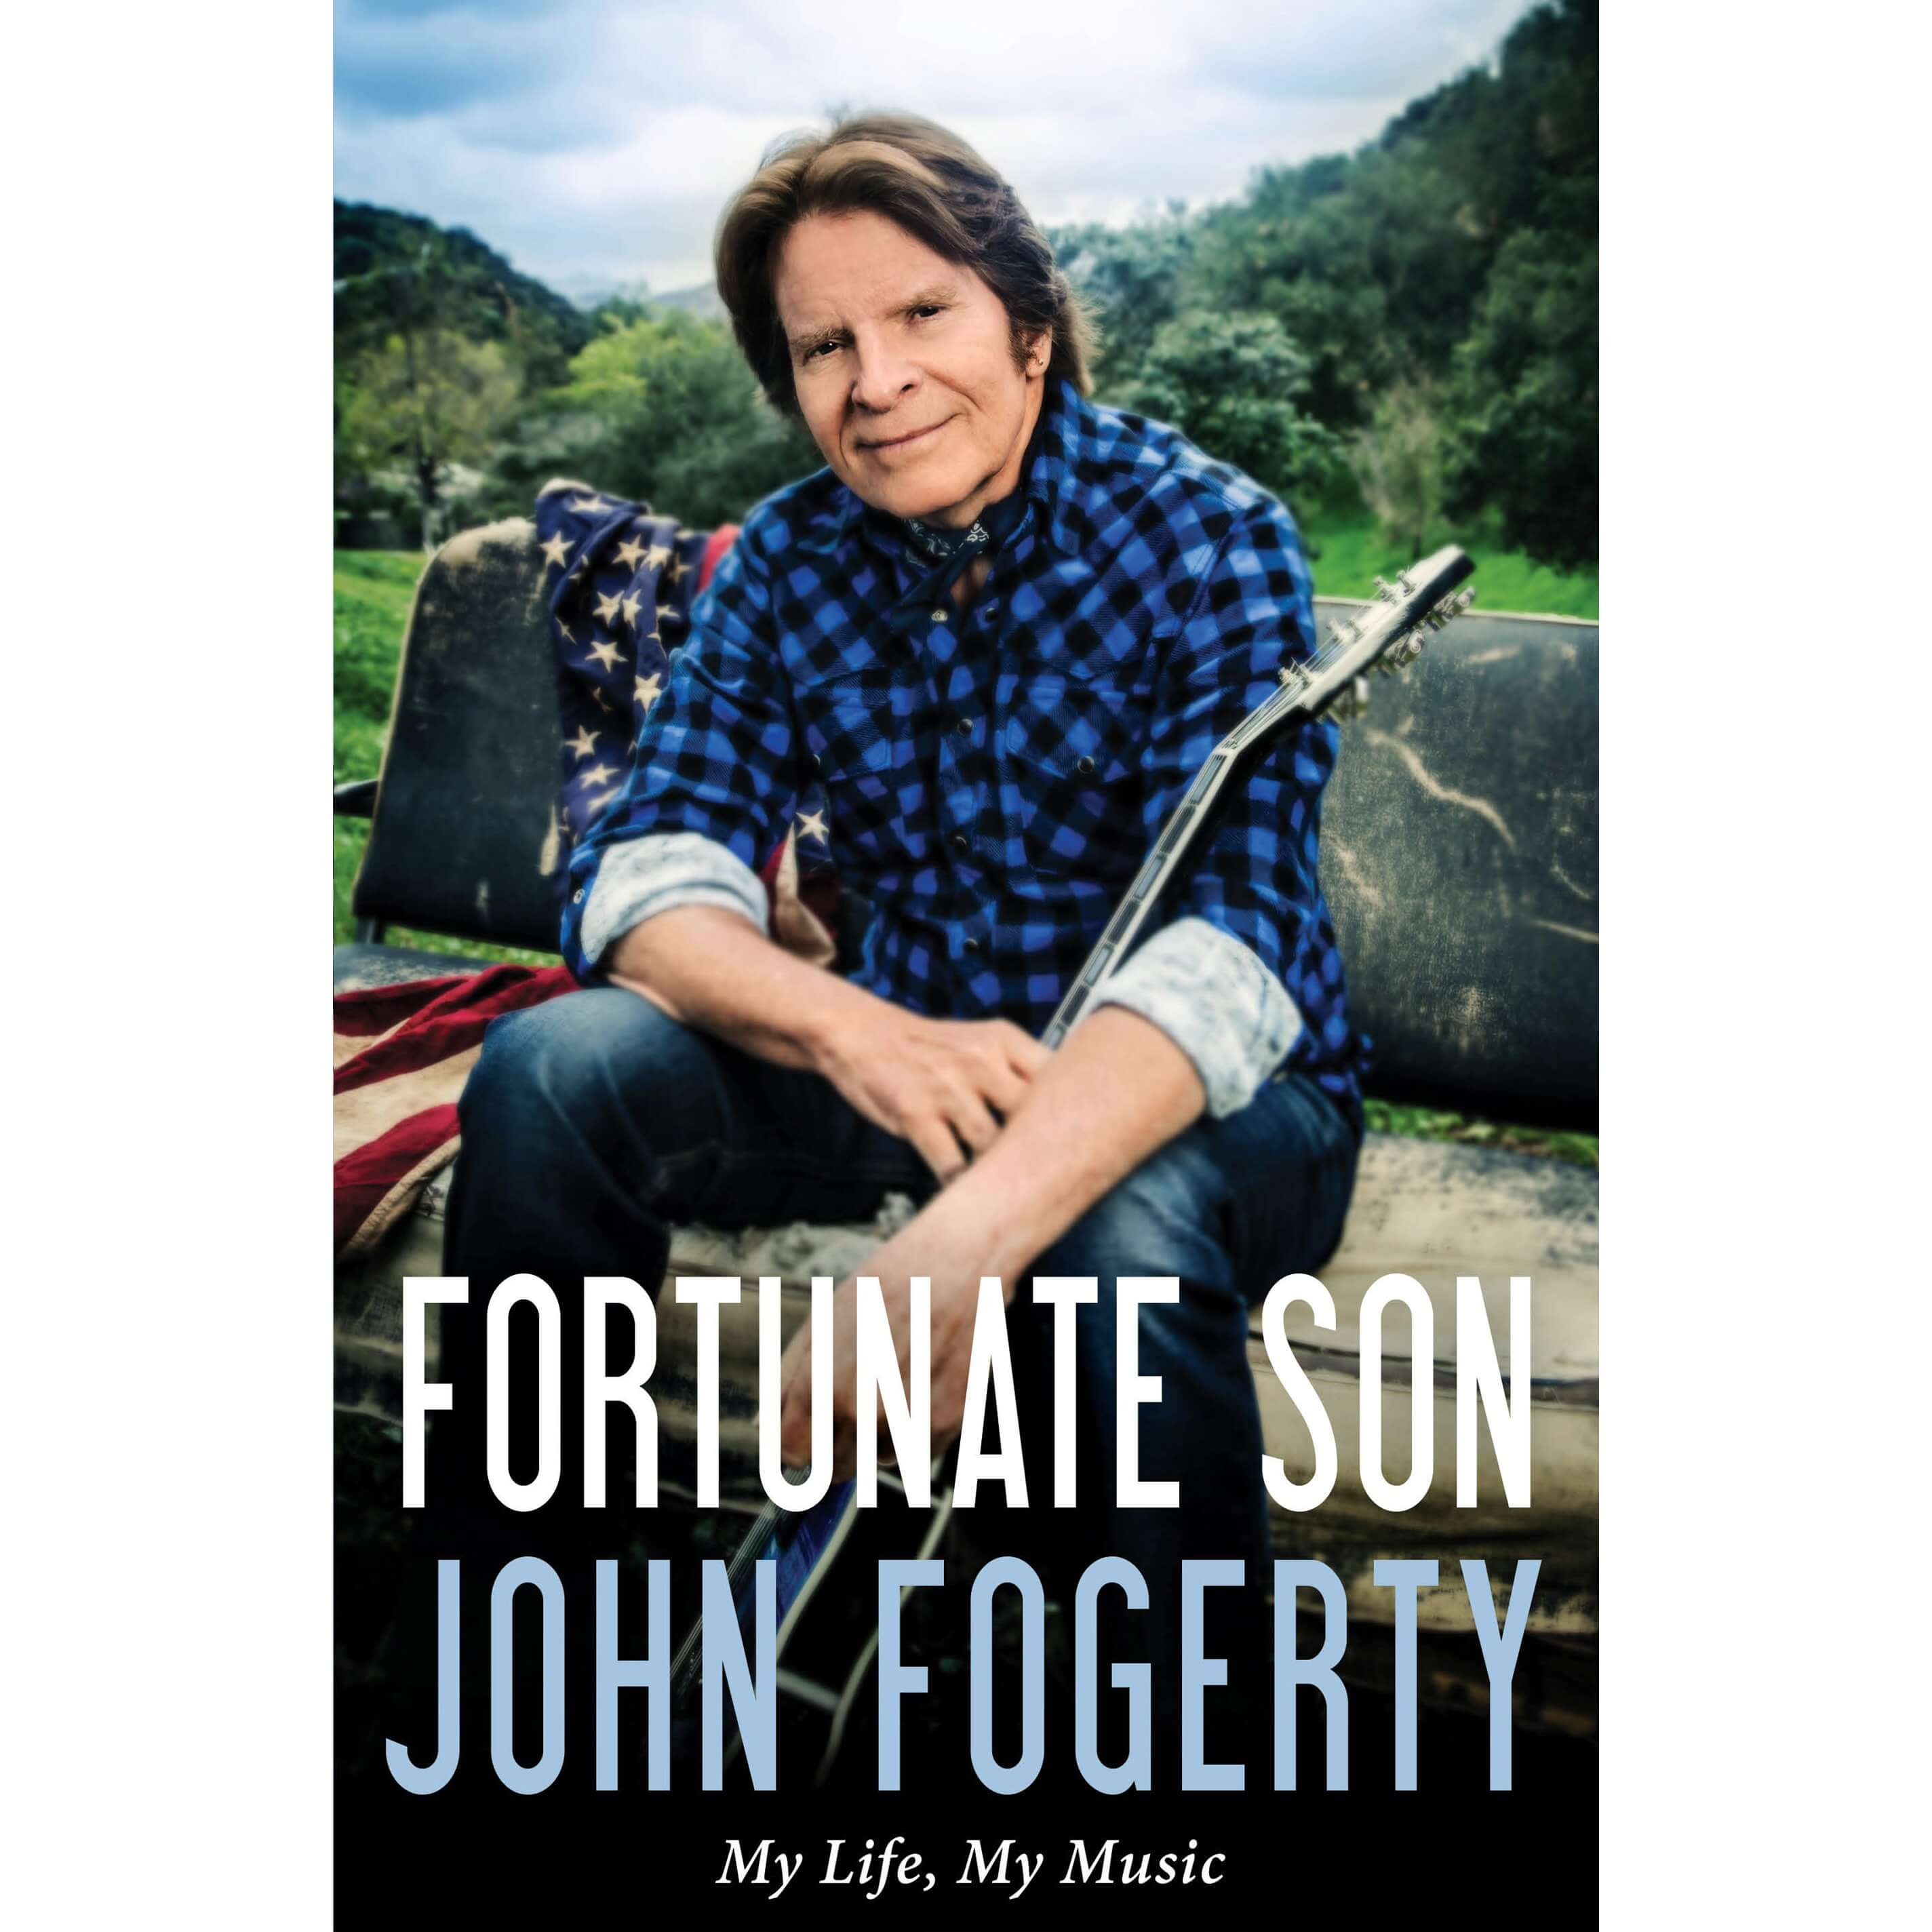 Review of John Fogerty Memoir